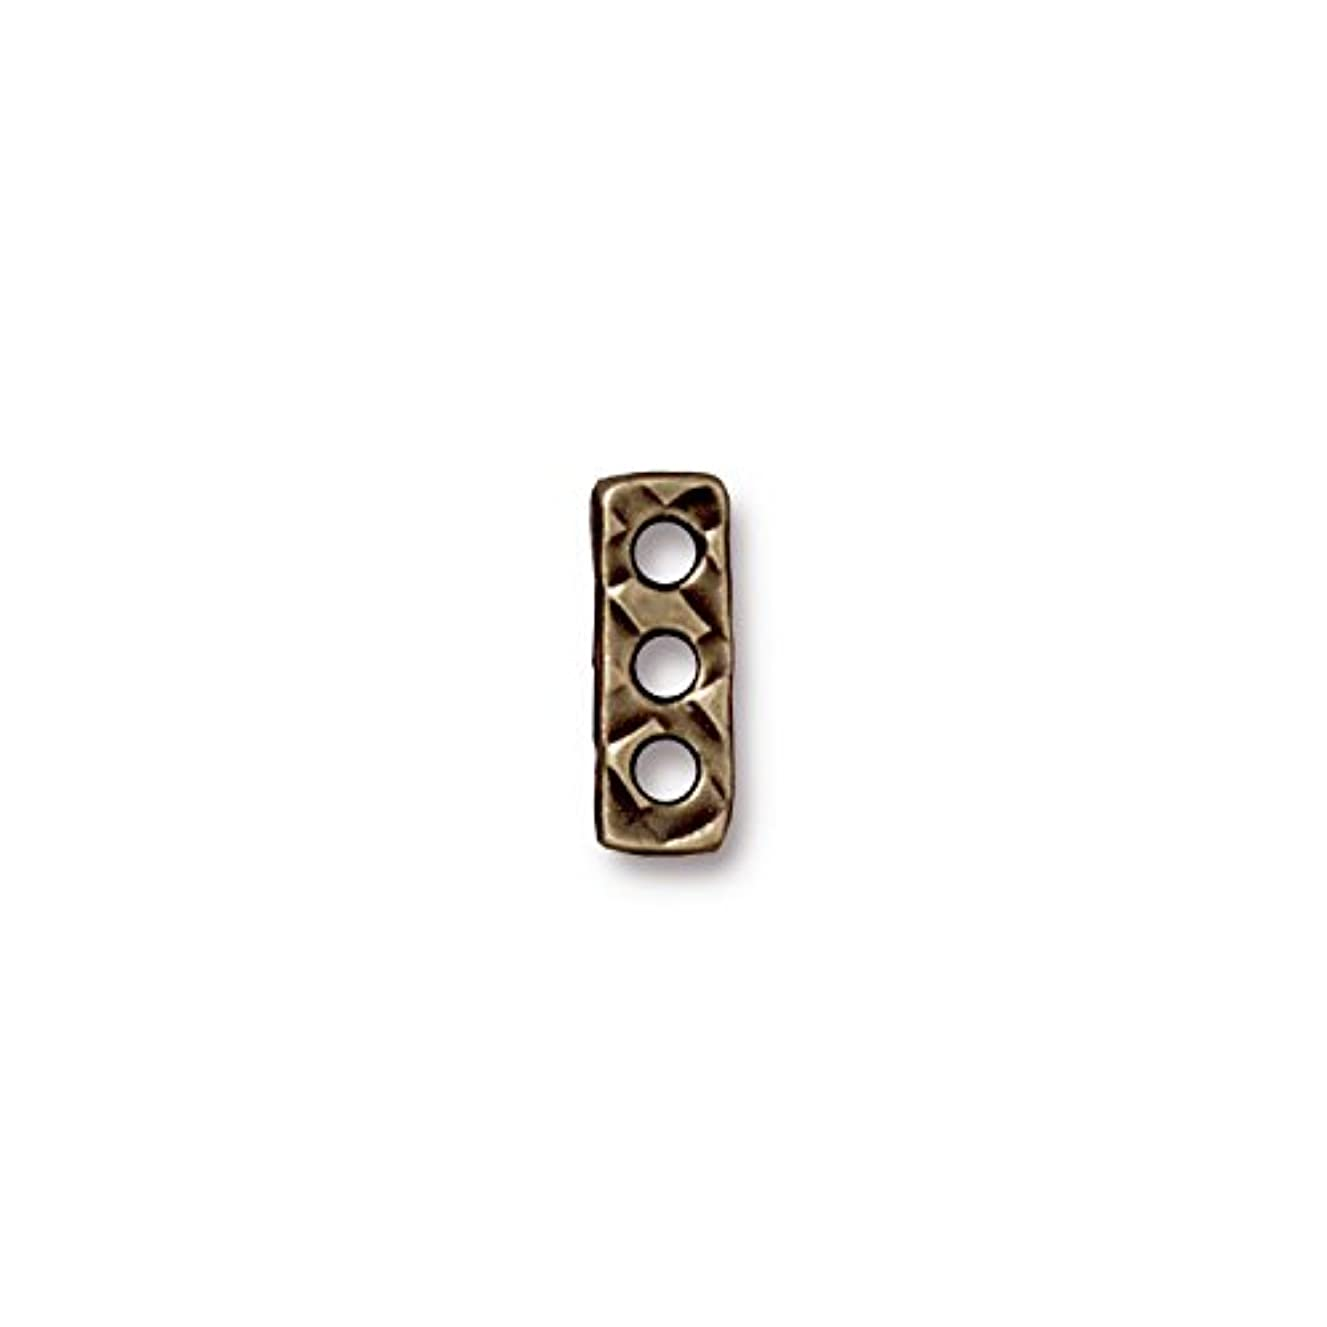 TierraCast Rock and Roll 3 Hole Bar, 5x14mm, Antique Brass Oxide Finish Pewter, 4-Pack